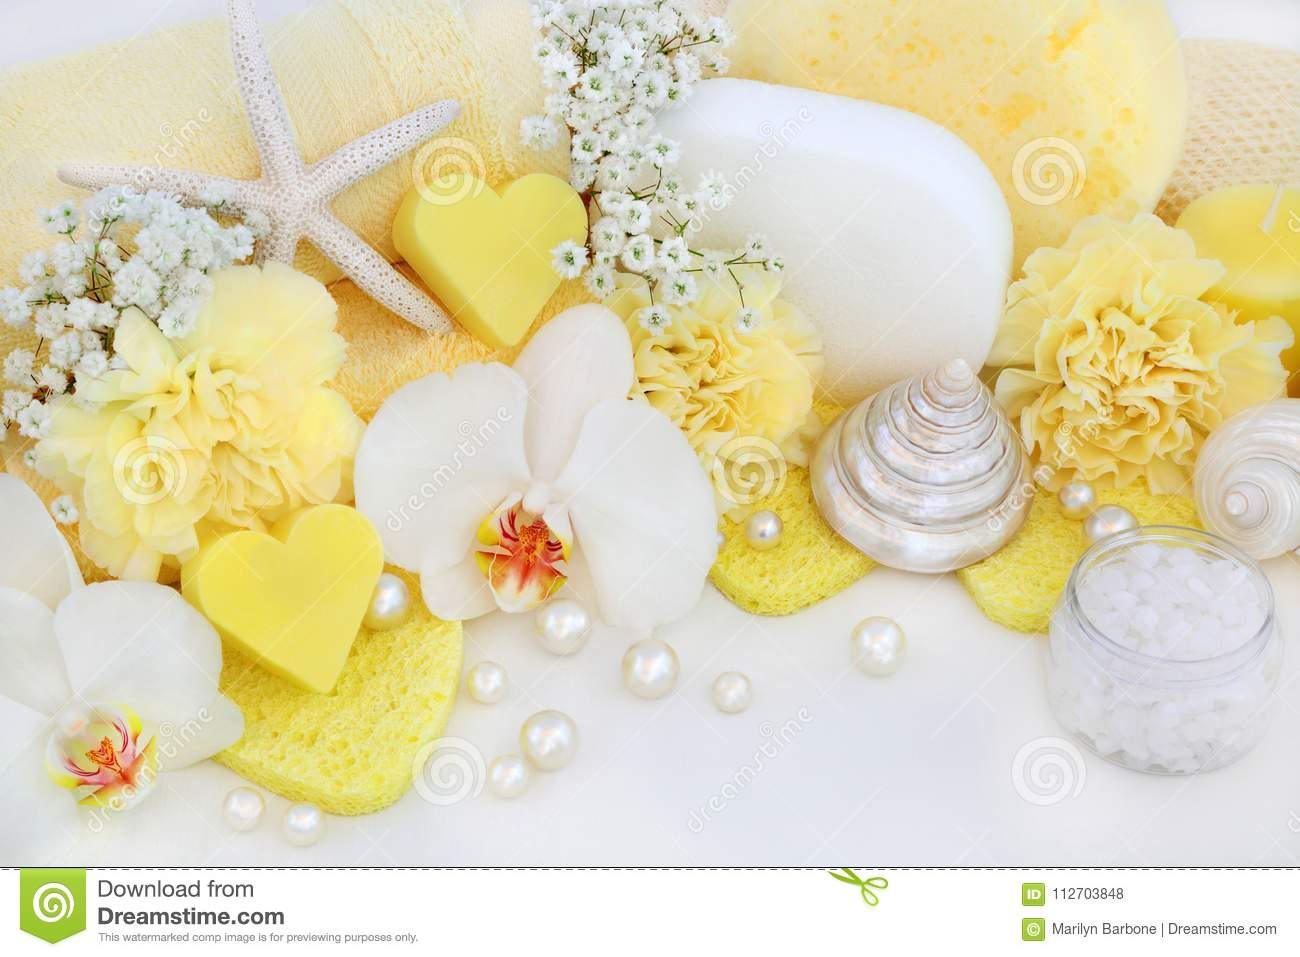 Bathroom Beauty And Cleansing Accessories Stock Photo - Image of ...